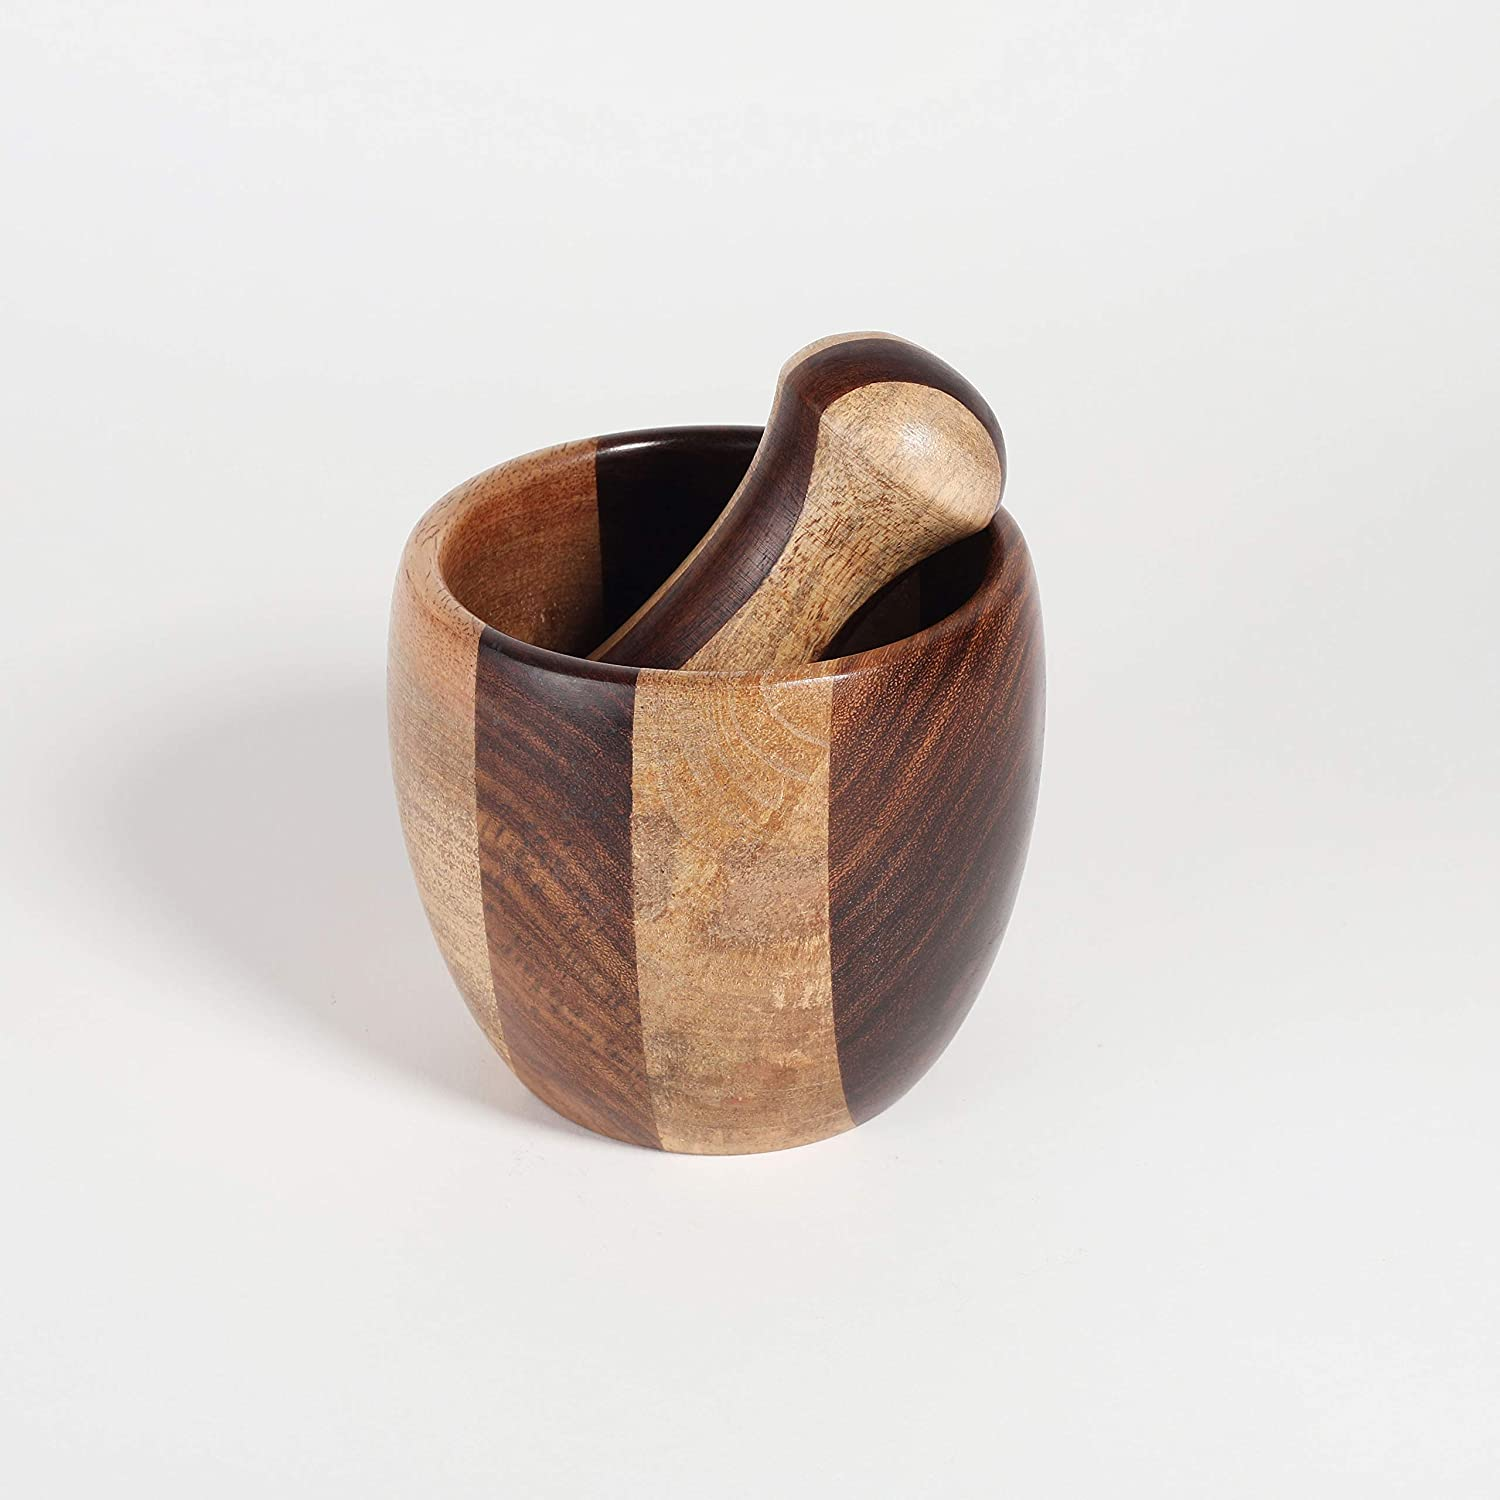 4x4 in Rusticity Wooden Mortar /& Pestle Grinder Set for Kitchen Handmade Round Manual Kharal Smasher,